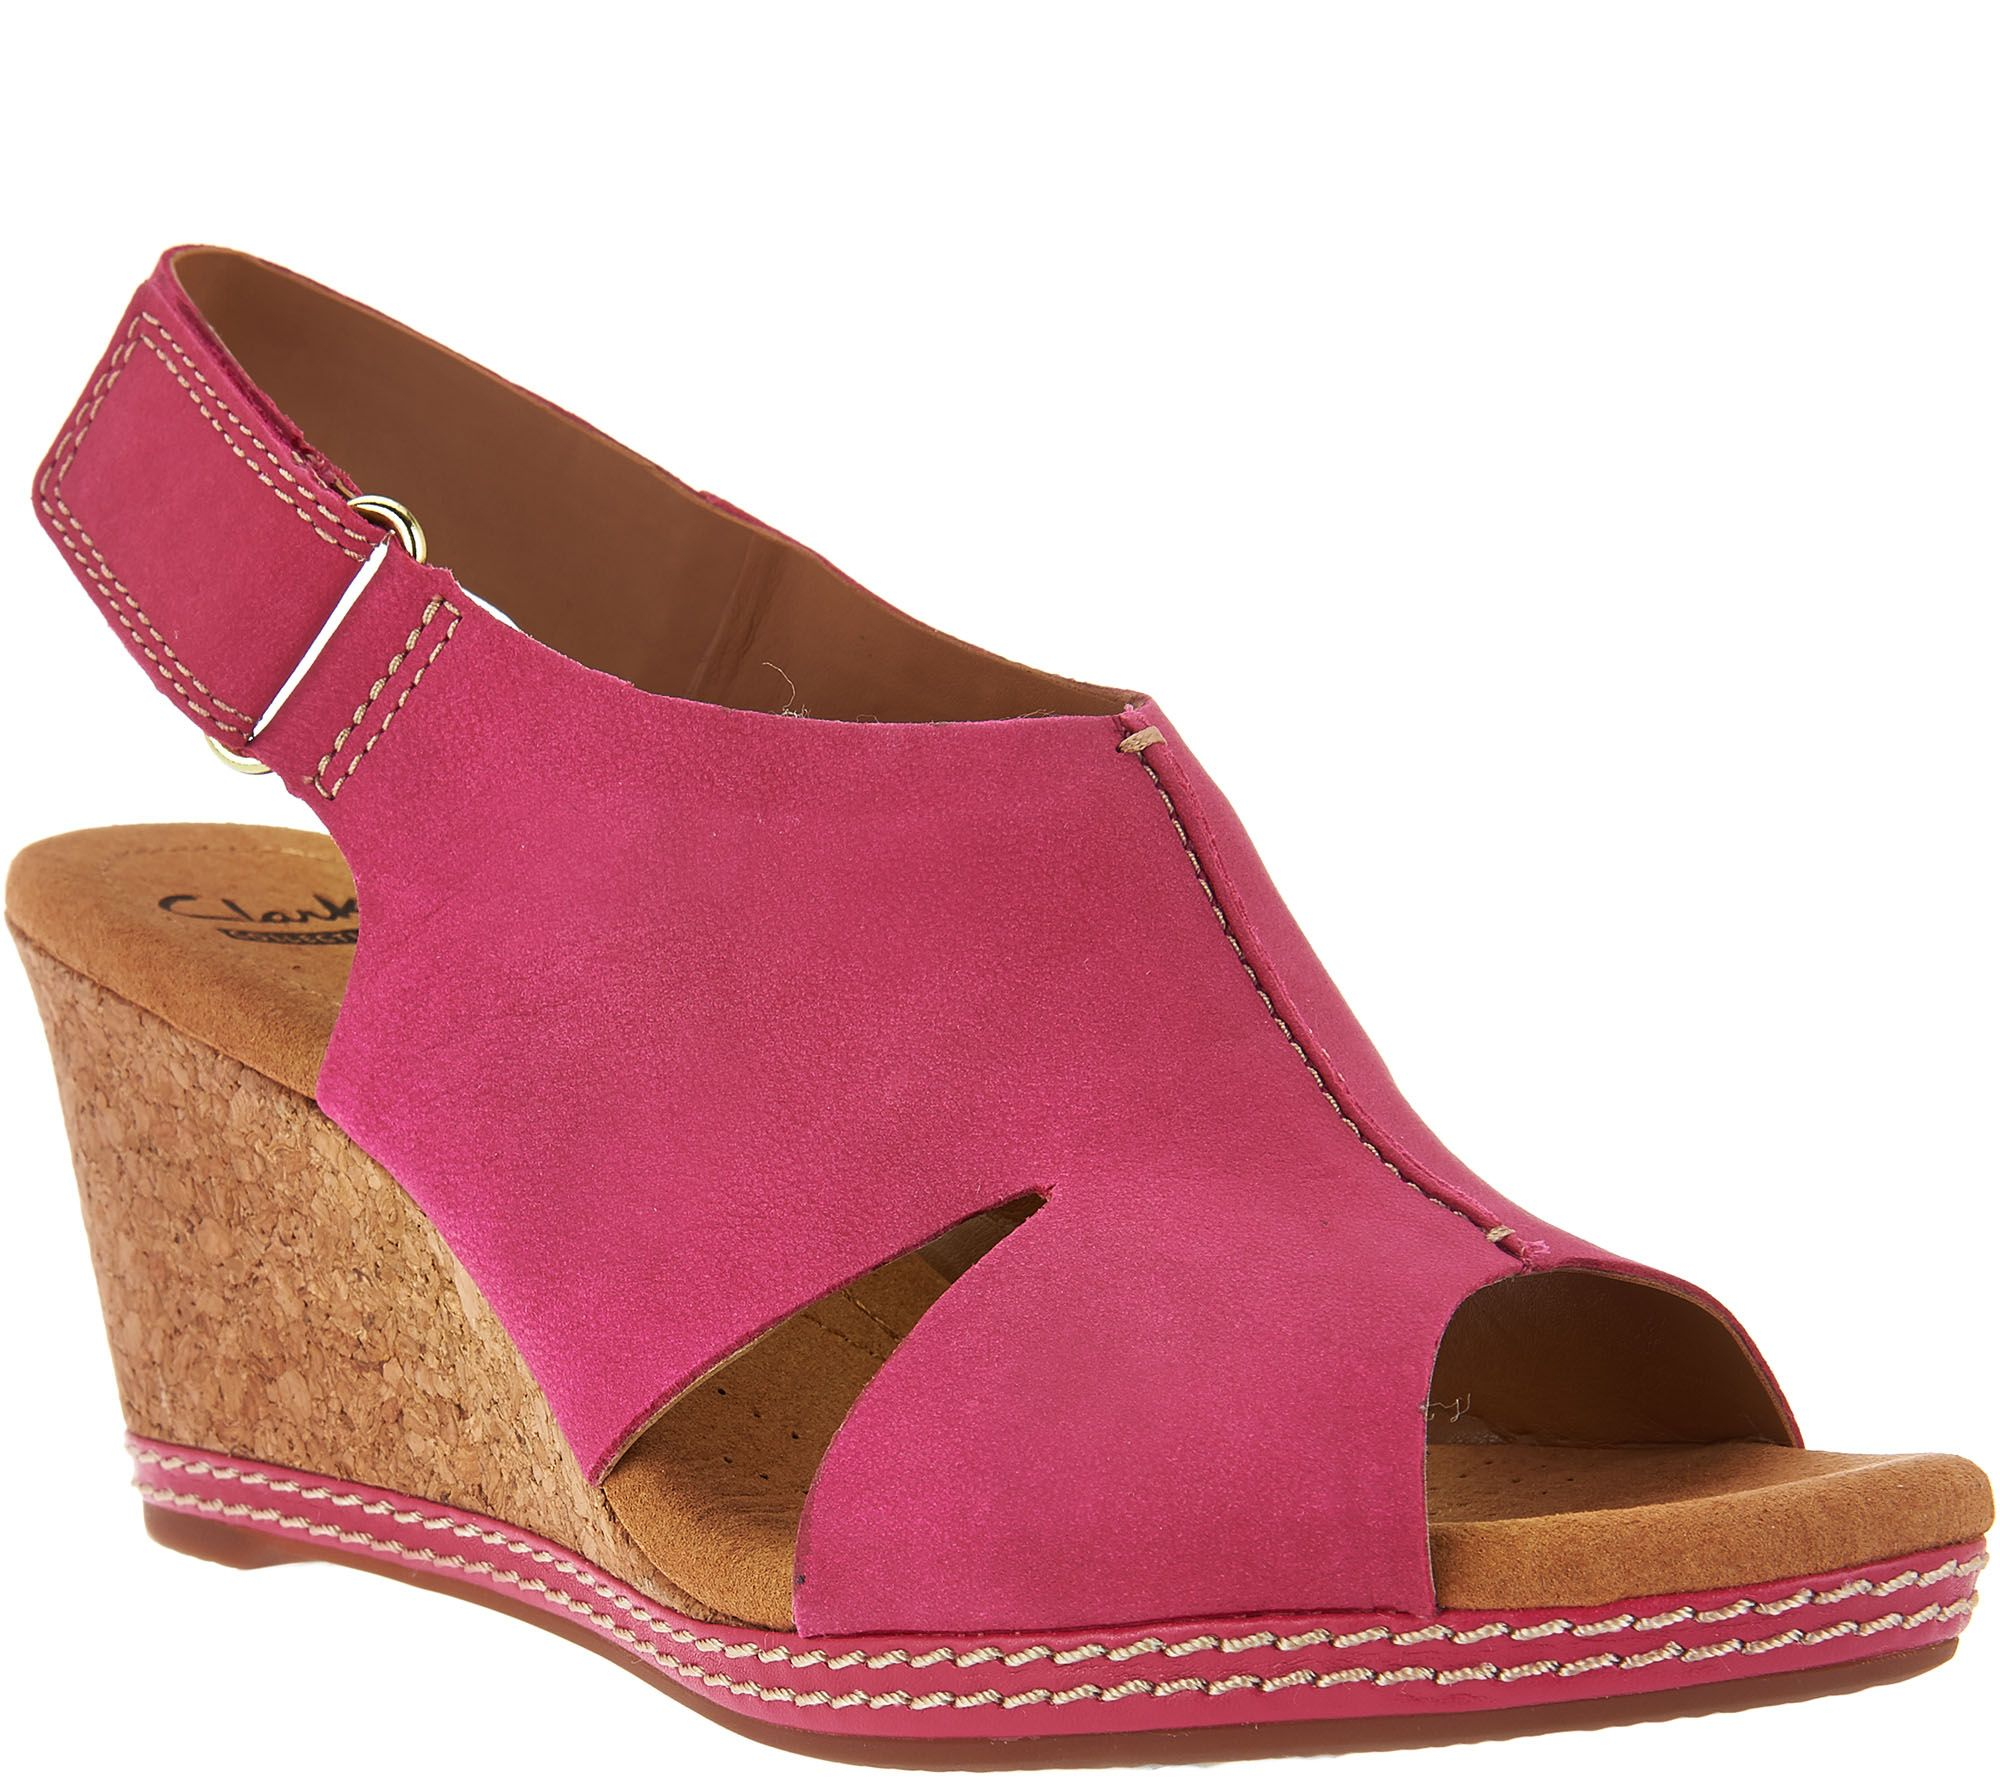 Clarks Nubuck Wedge Sandals with Backstrap - Helio Float - Page 1 — QVC.com